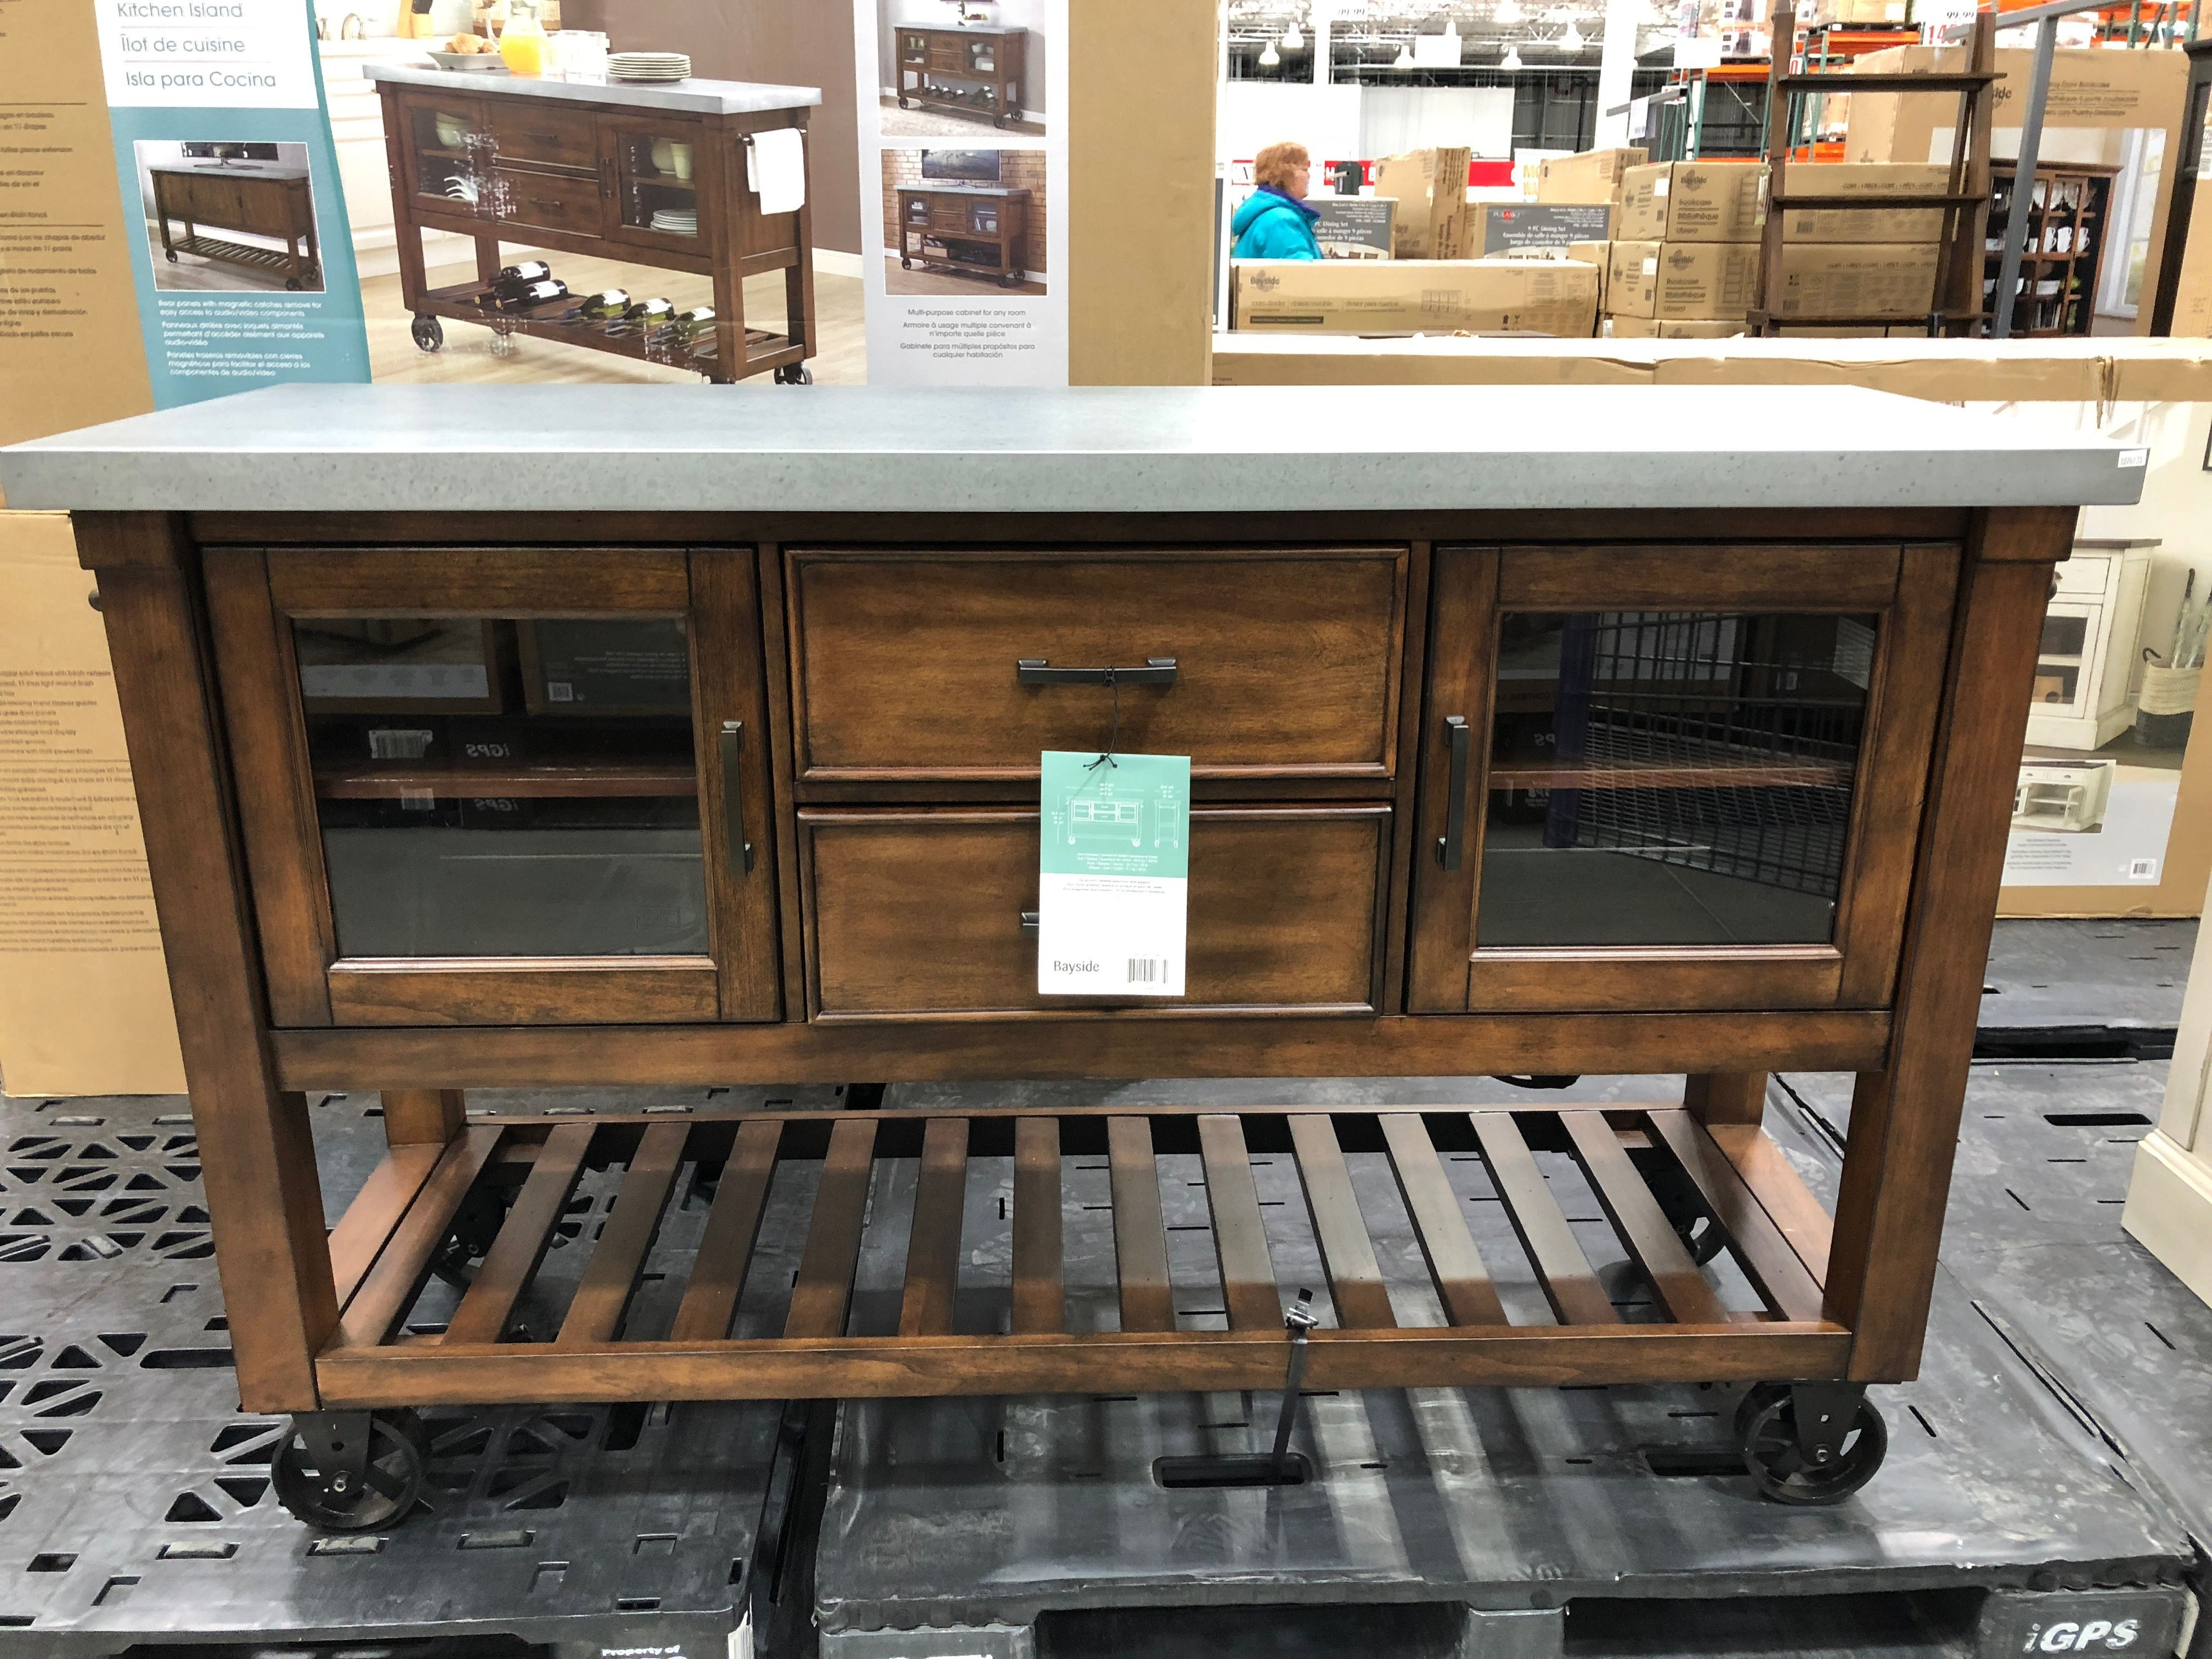 Kitchen Island Costco Bayside Kitchen Island Console At Costco 399 99 61 X20 X38